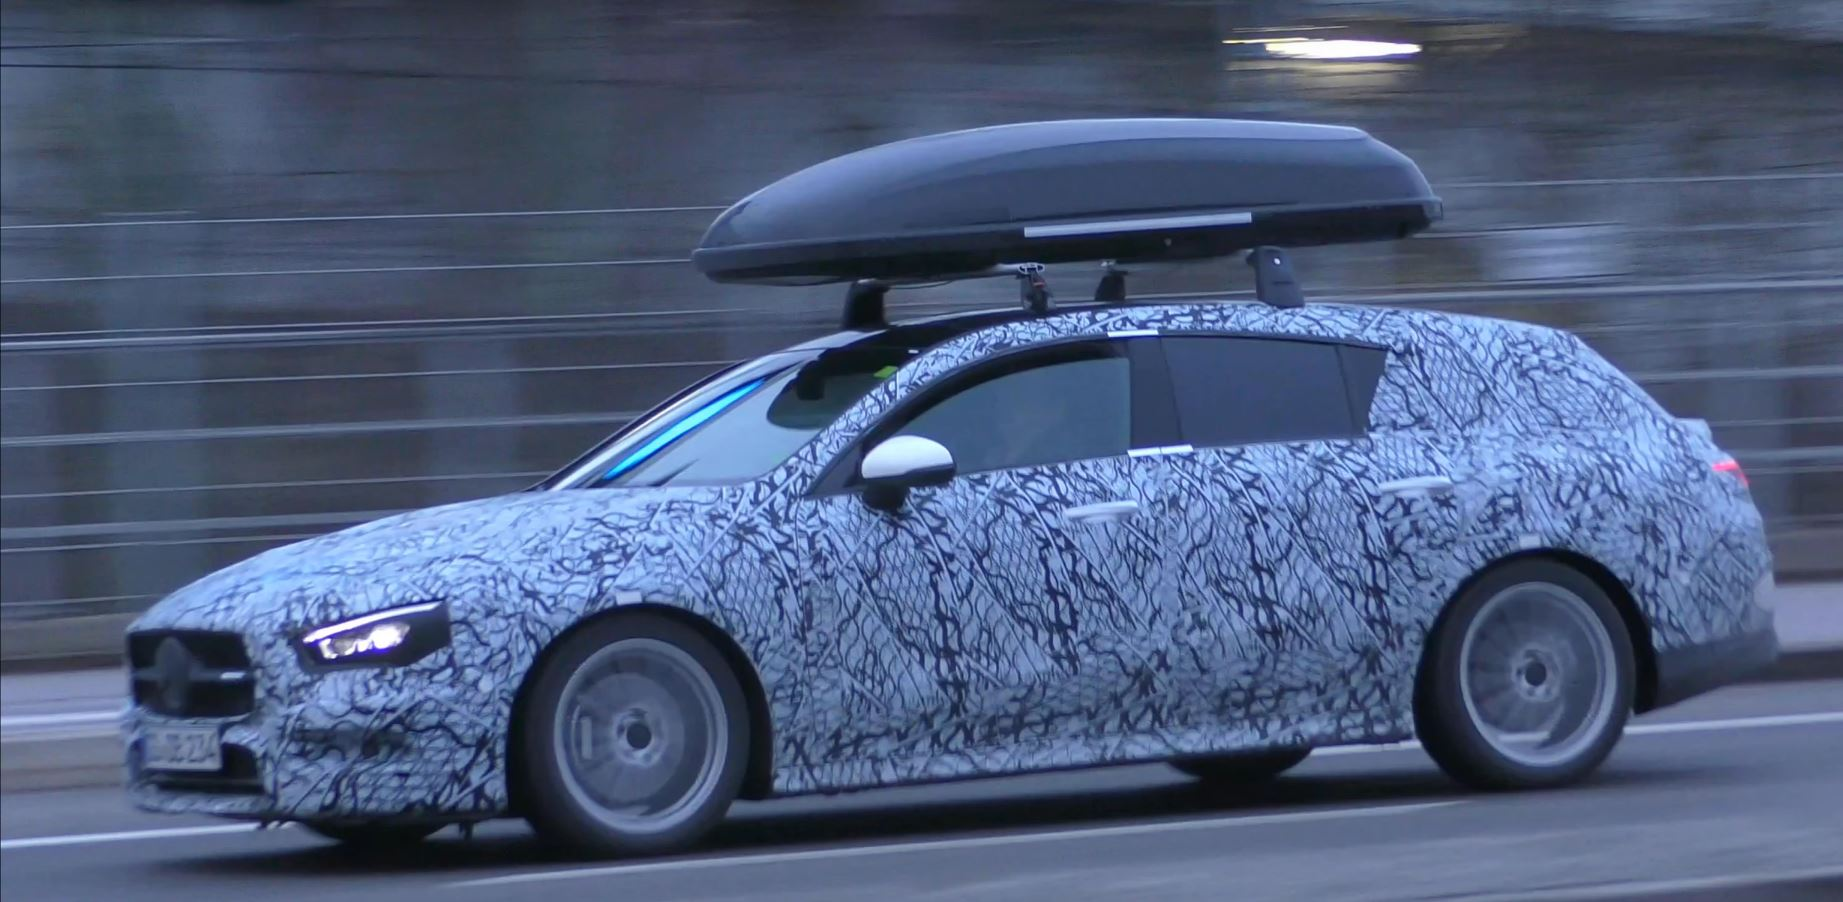 2020 mercedes cla shooting brake spied with roof box. Black Bedroom Furniture Sets. Home Design Ideas